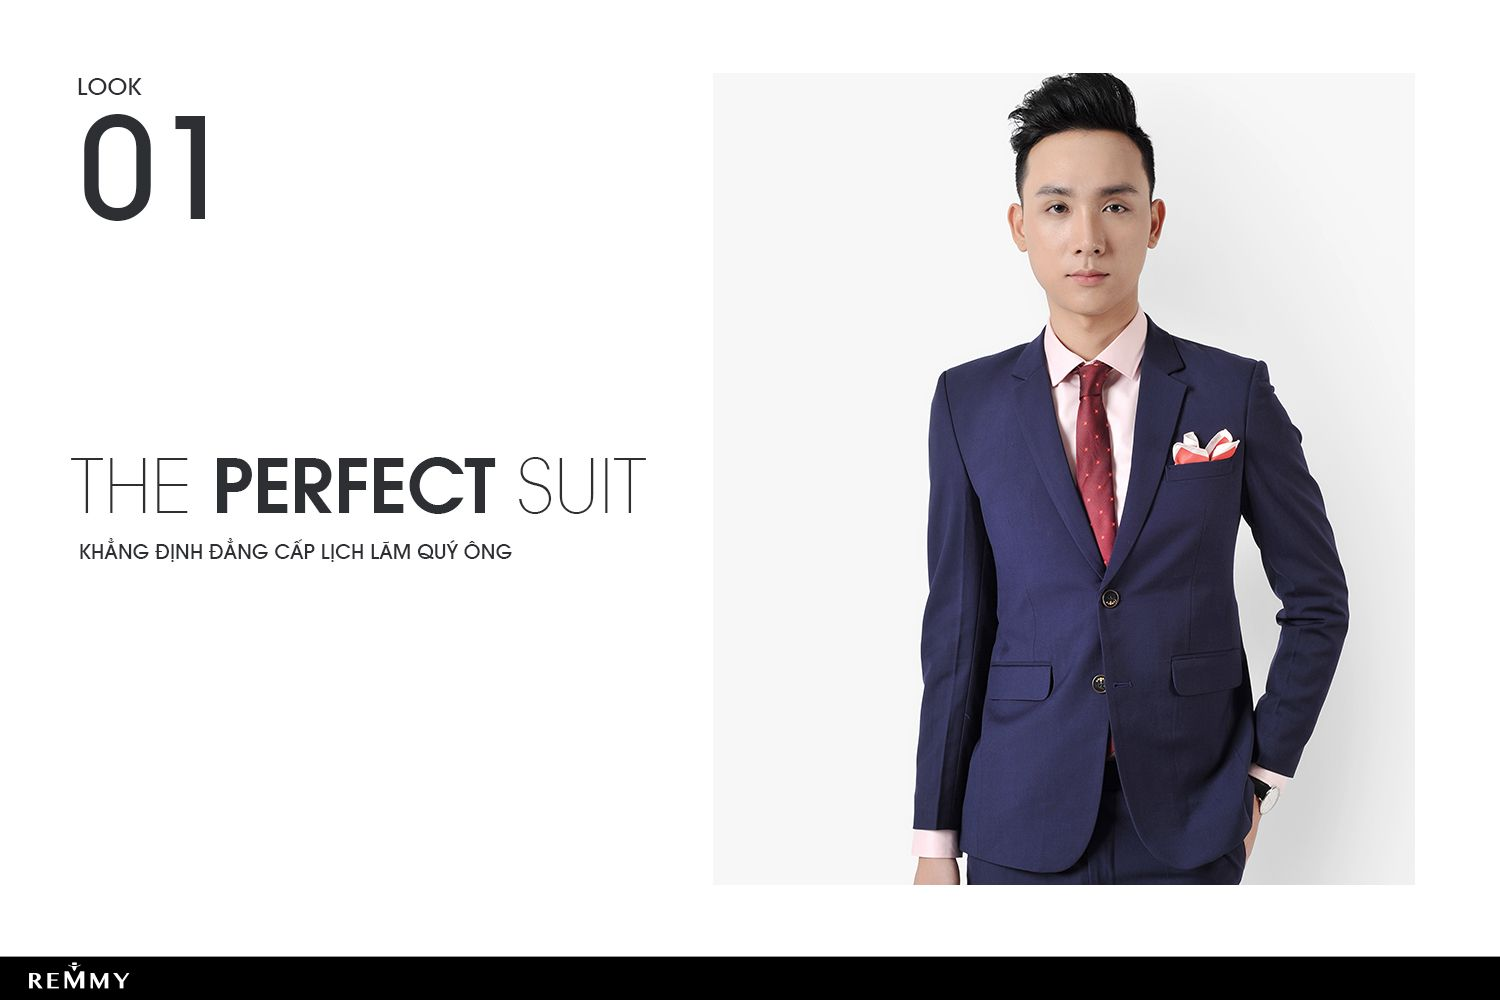 THE PERFECT SUIT